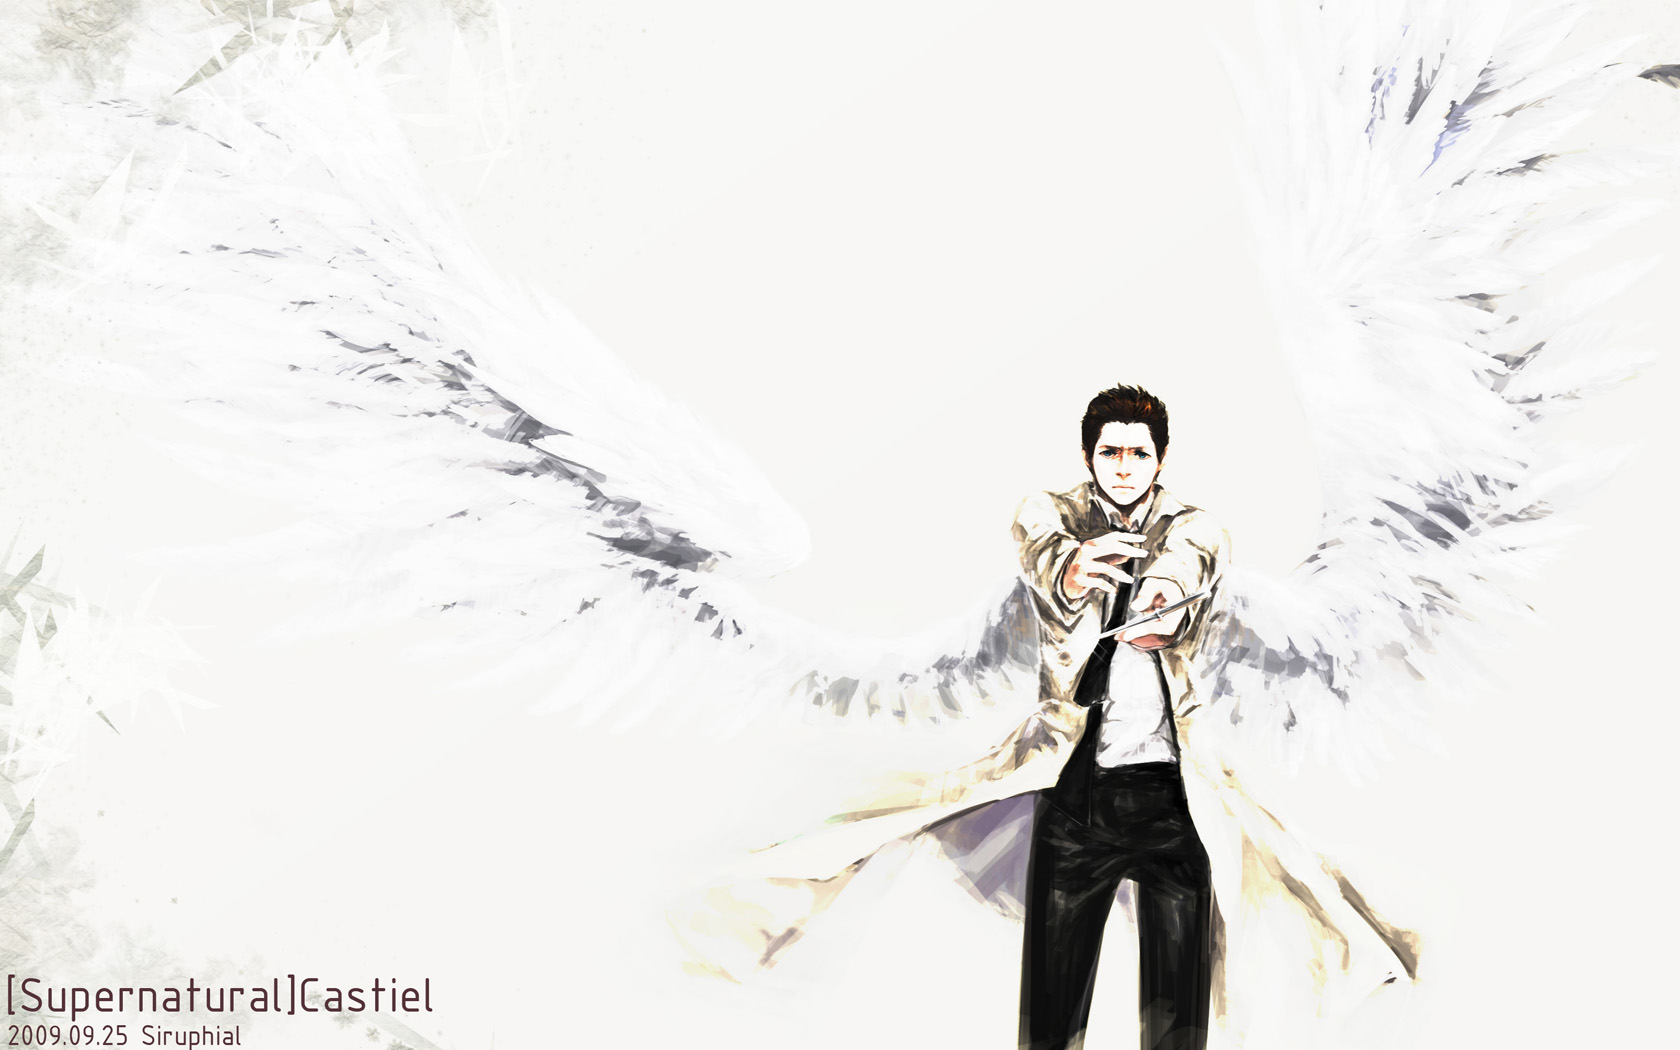 SPN-the warrior Castiel by siruphial